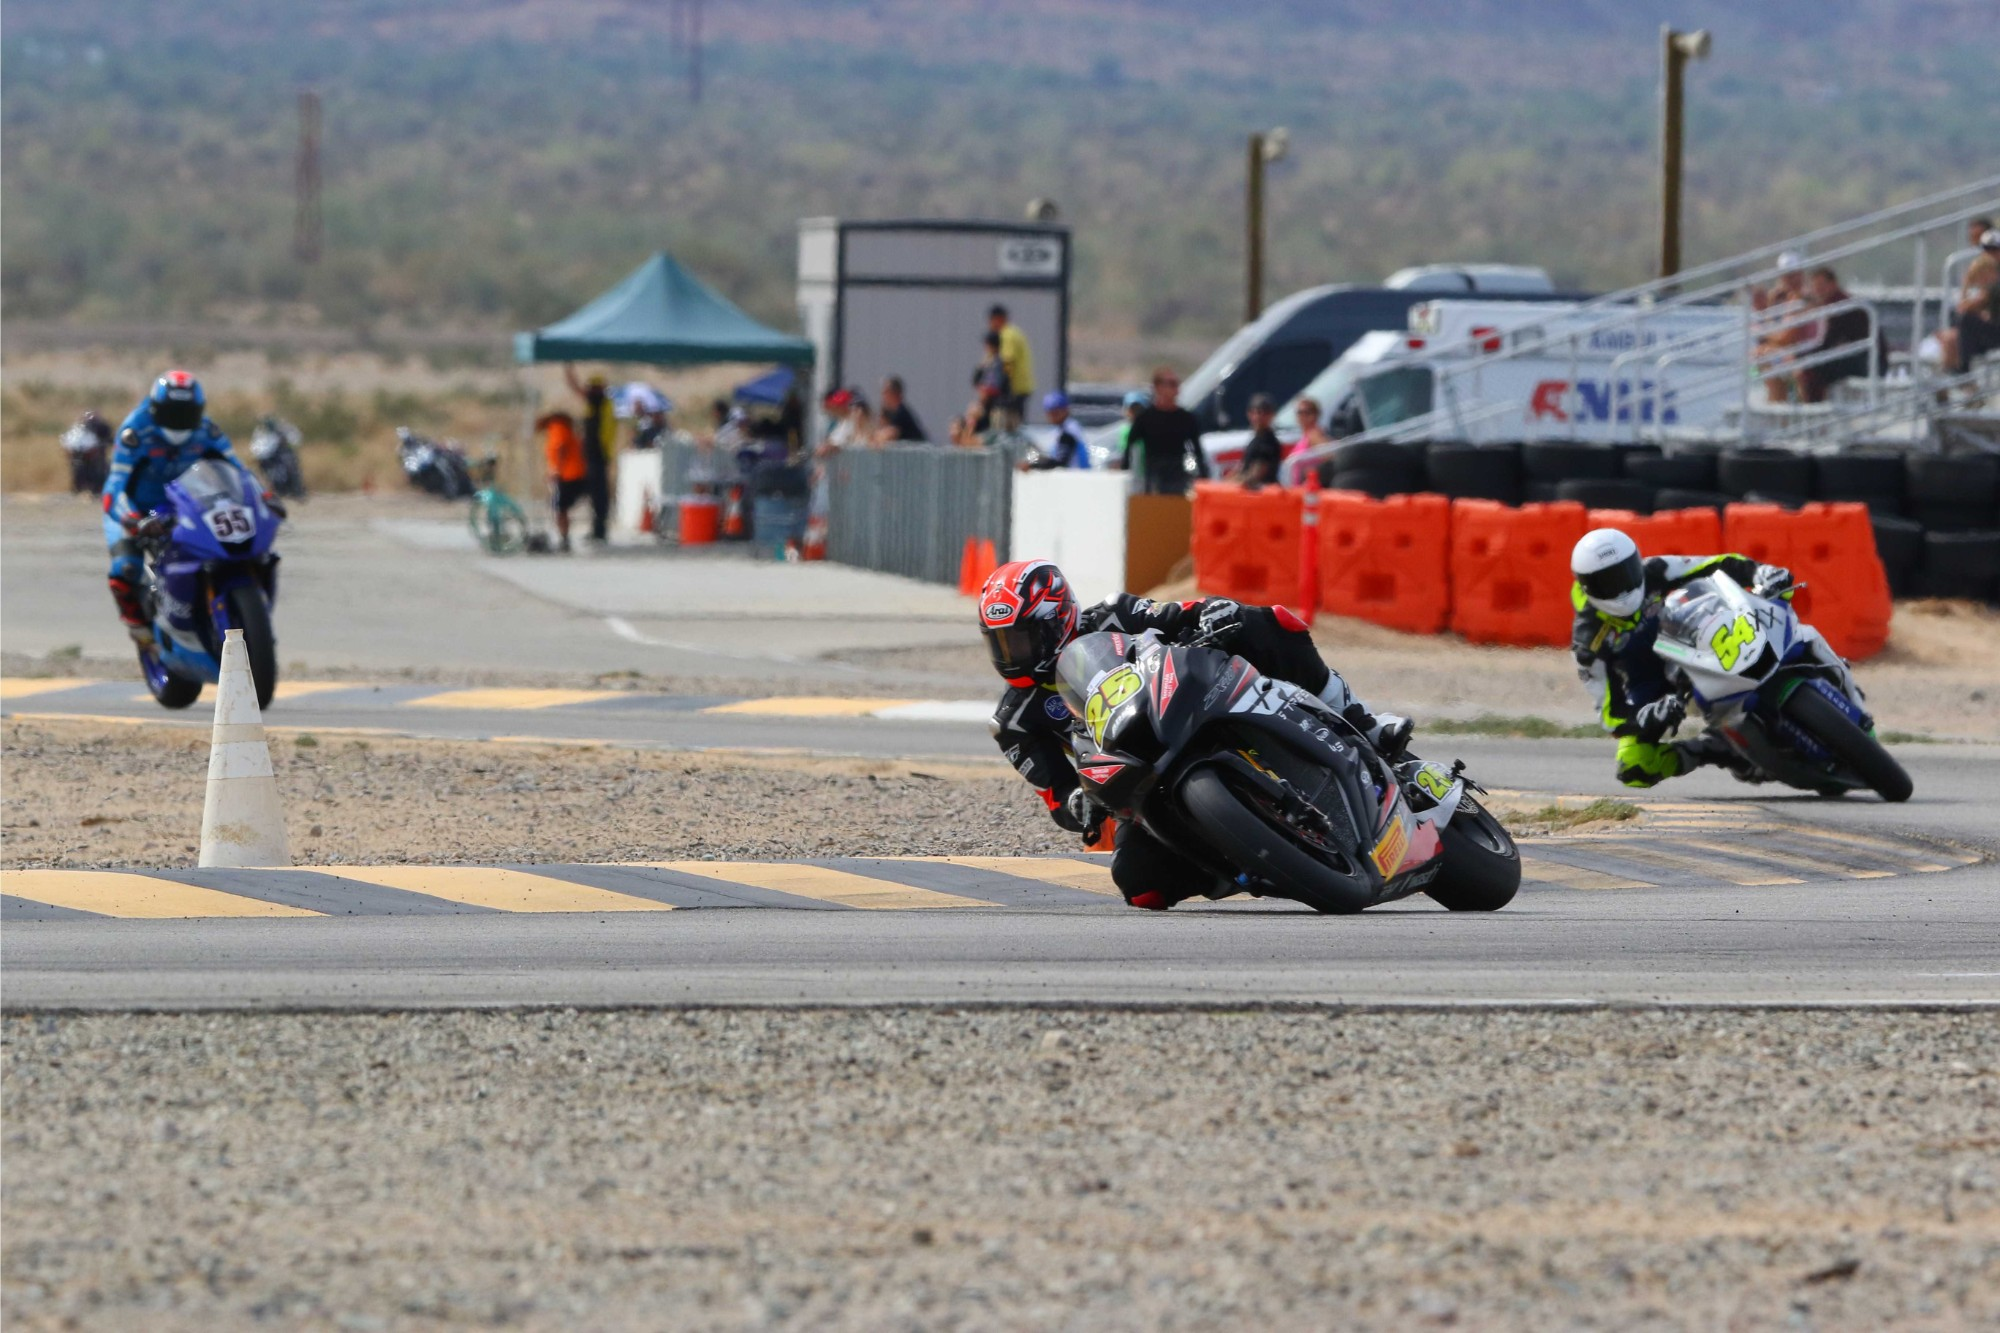 CVMA: Records Broken During Round Two Of Winter Series At Chuckwalla Valley Raceway; ROCCO LANDERS SCORES 6 WINS AT CVMA AND SETS TWO NEW TRACK RECORDS ABOARD JEREMY TOYE'S KAWASAKI NINJA 400R AND A HONDA RS125 OVER THE OCTOBER 27-28, 2018 RACE WEEKEND